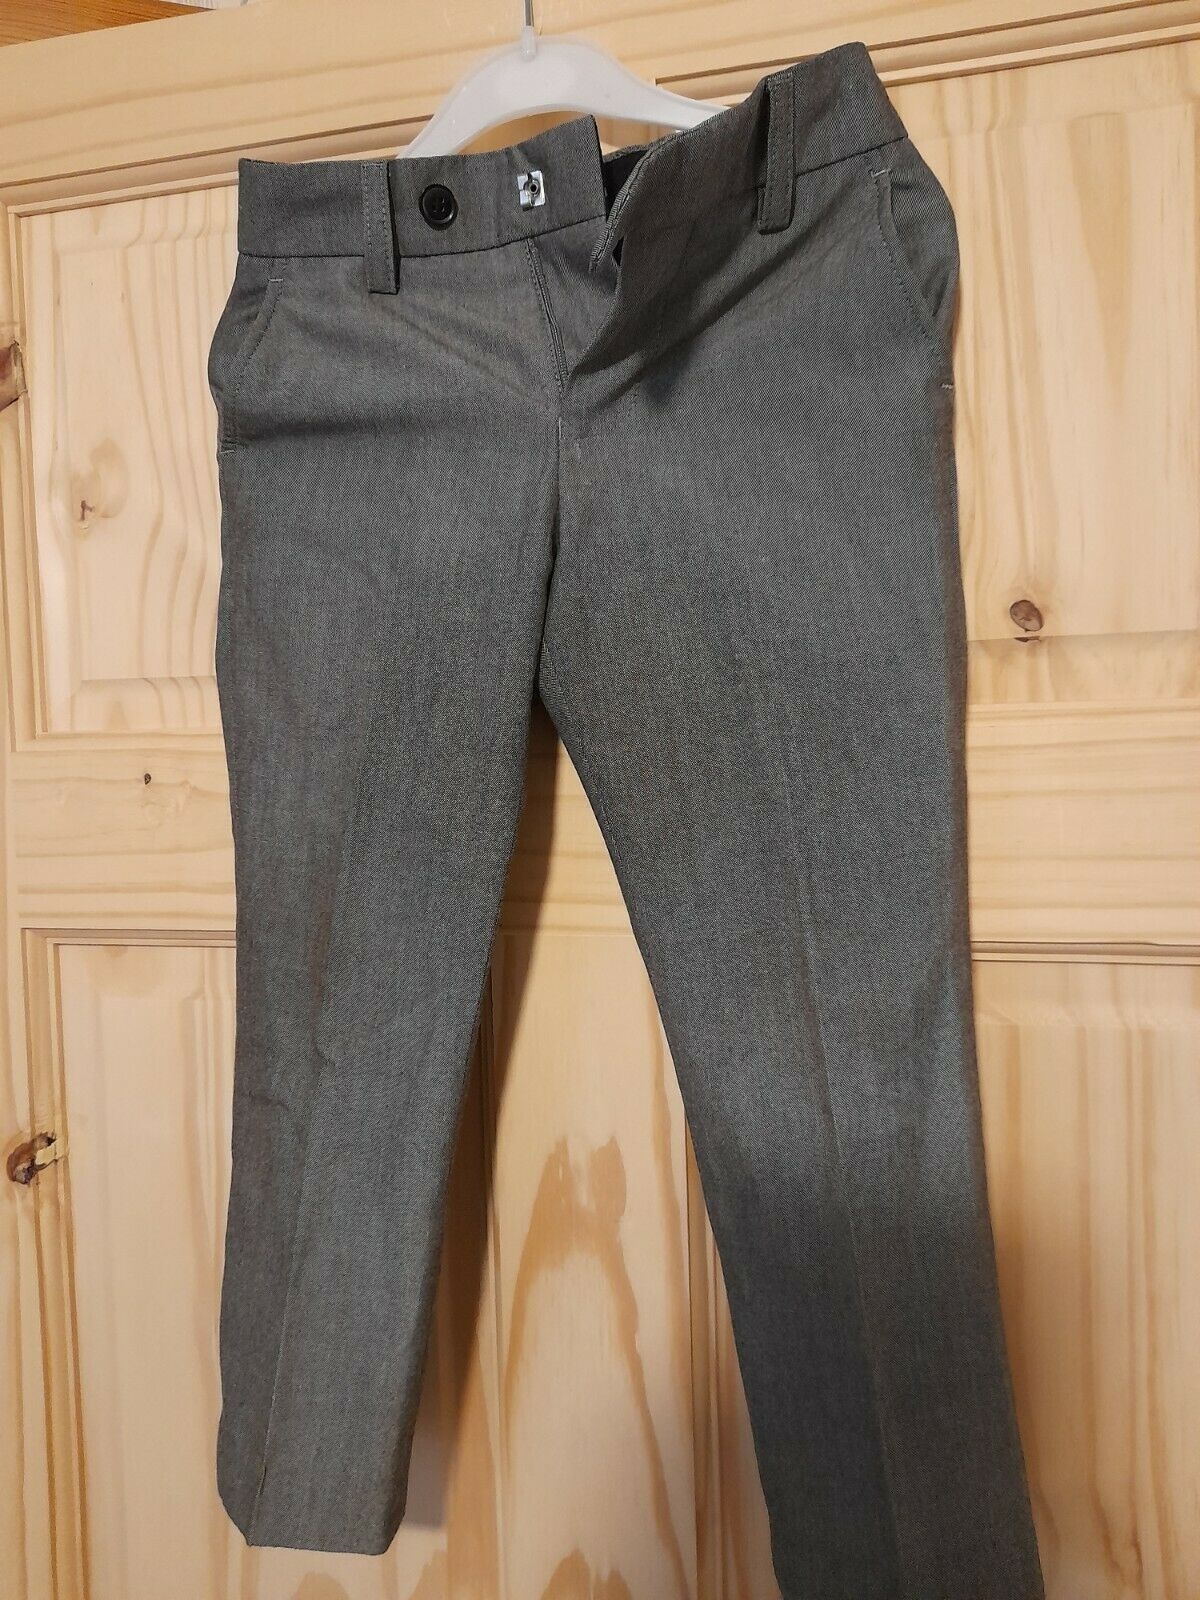 NEXT SIGNATURE BOYS LIGHT GREY FORMAL TROUSERS AGE 4 YEARS